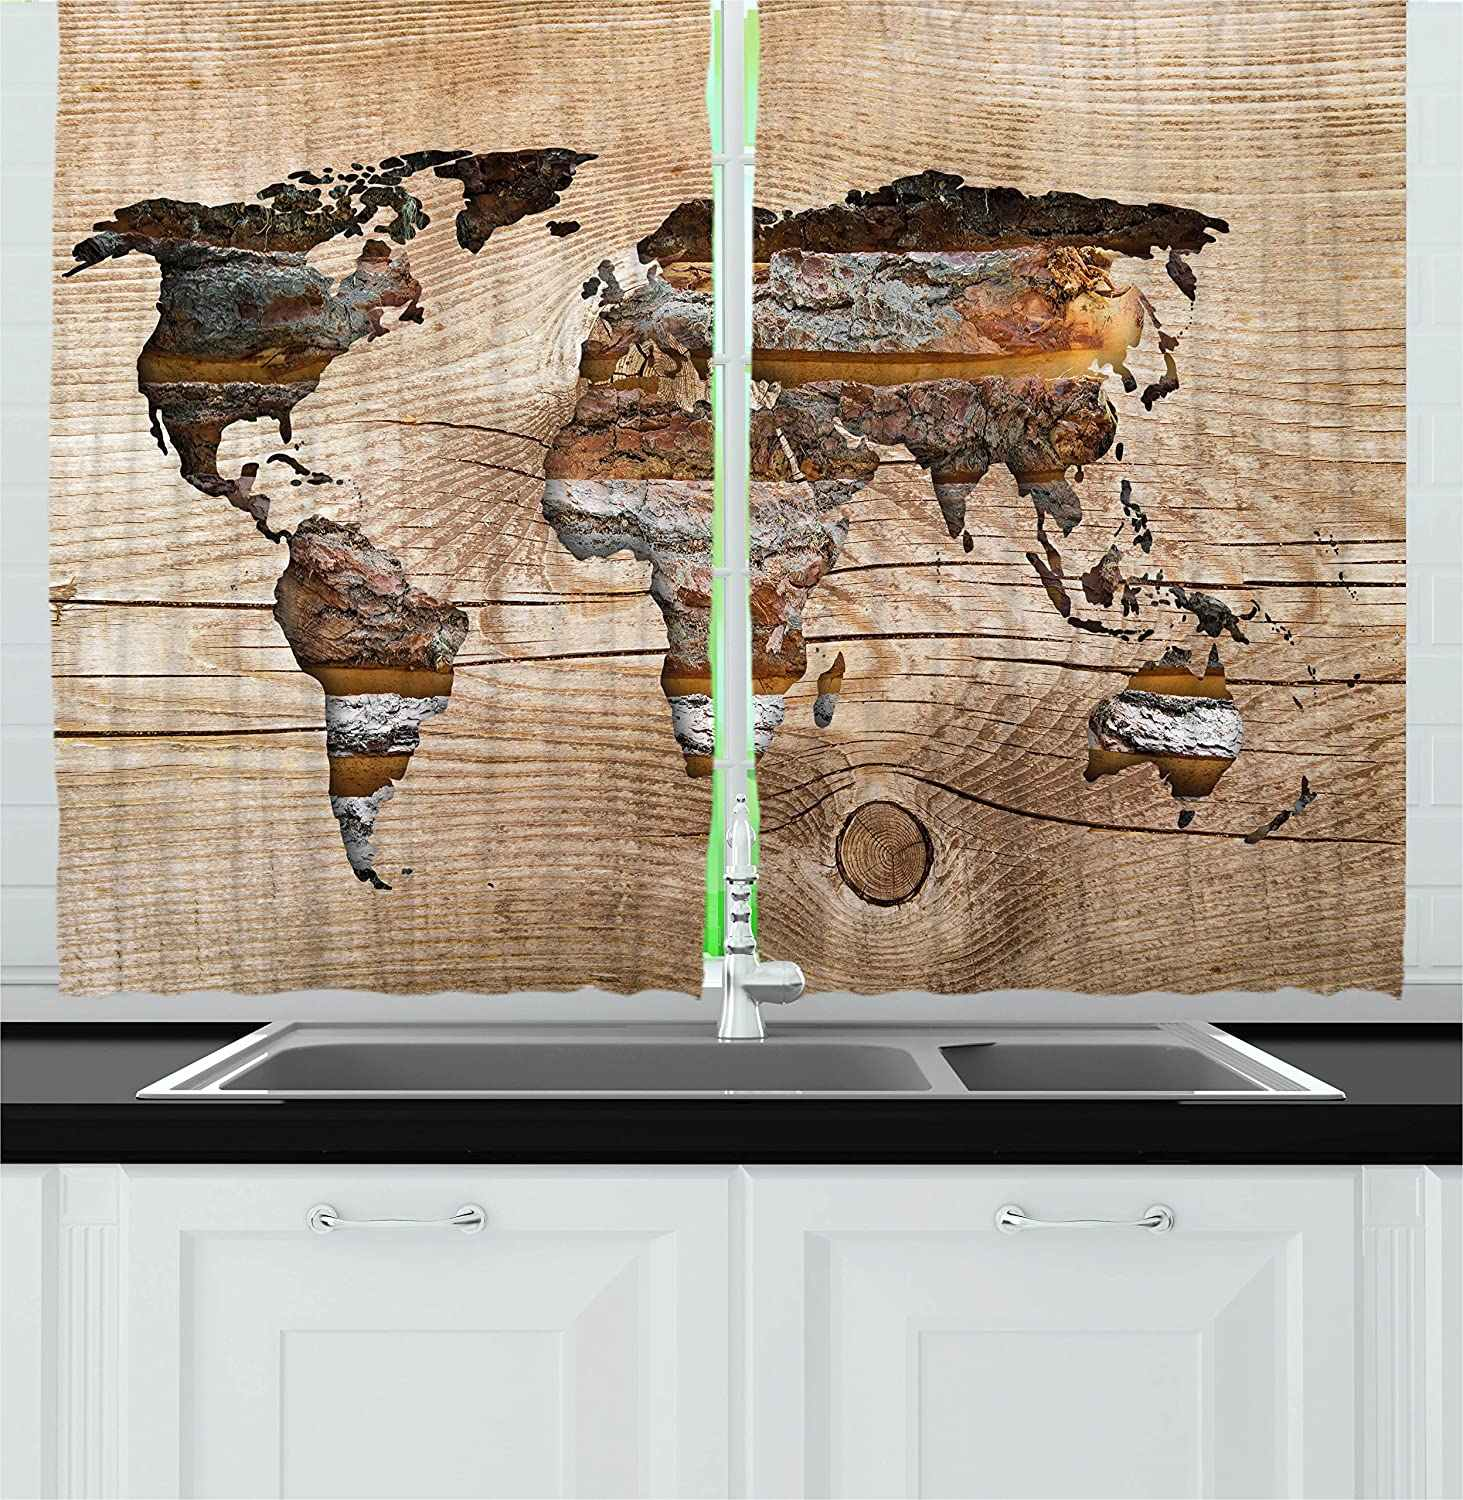 Modern Kitchen Curtains Vintage World Map Form On Wooden Texture Effect Background Rustic Design Window Curtain For Kitchen Cafe Curtains Aliexpress